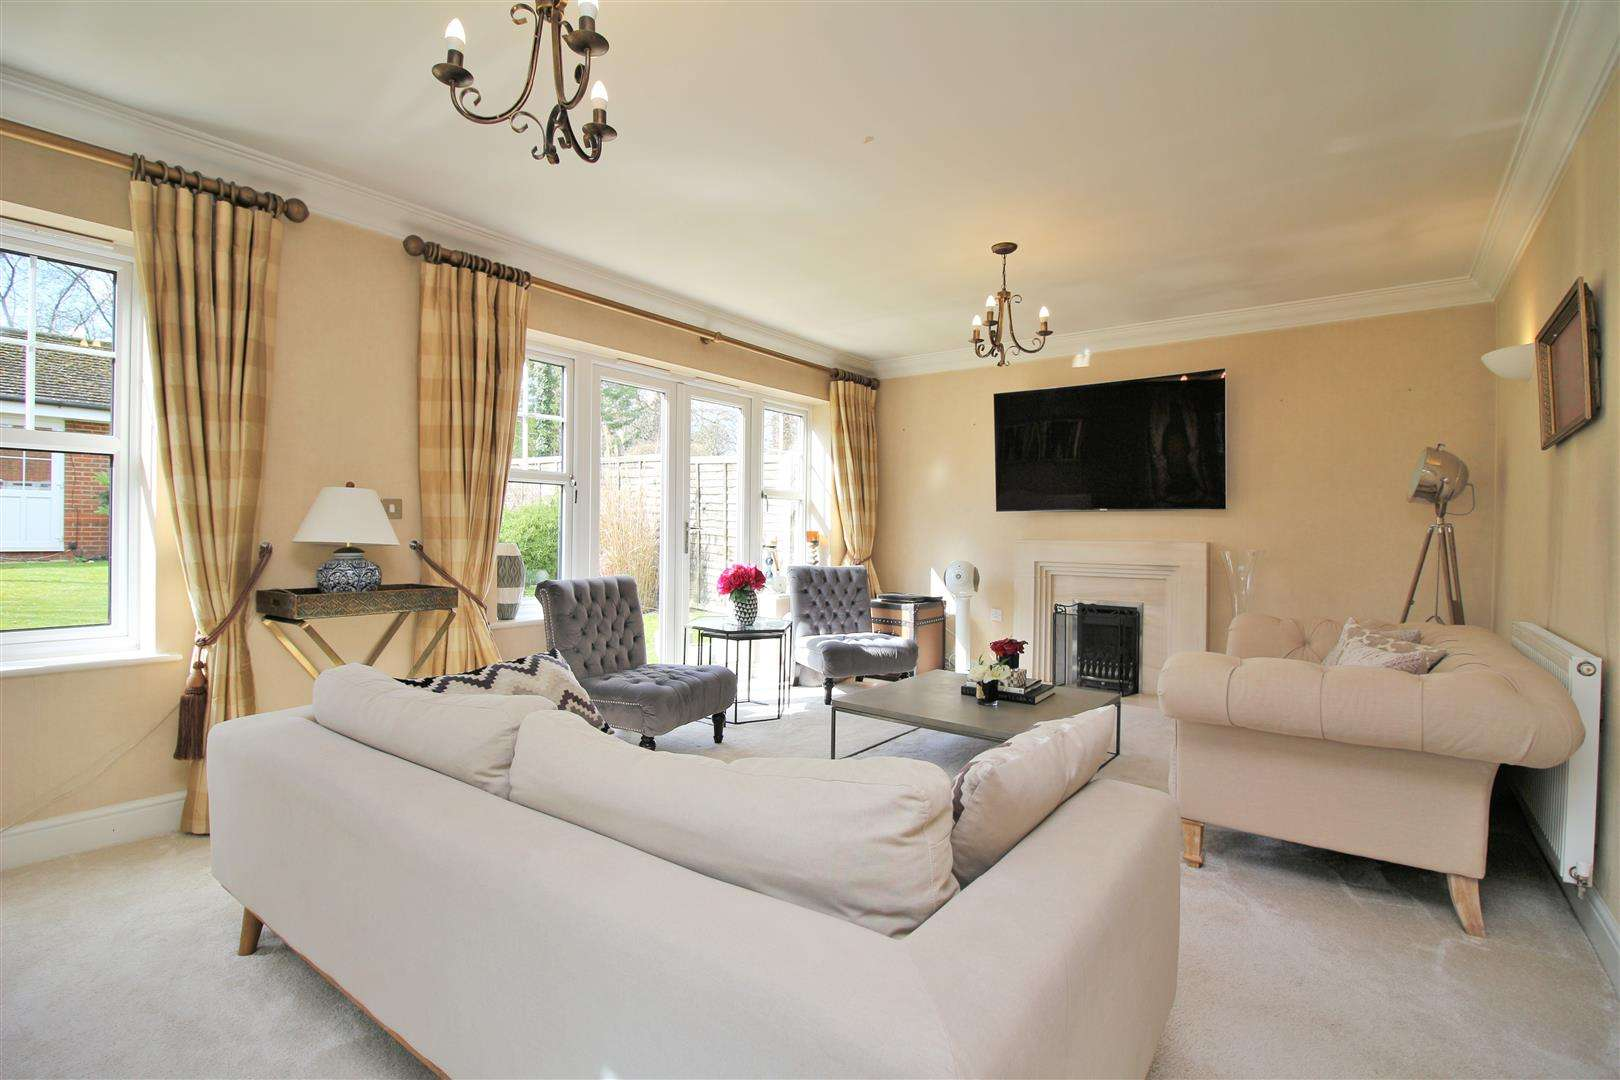 4 bed to rent in Bushey Heath - (Property Image 1)